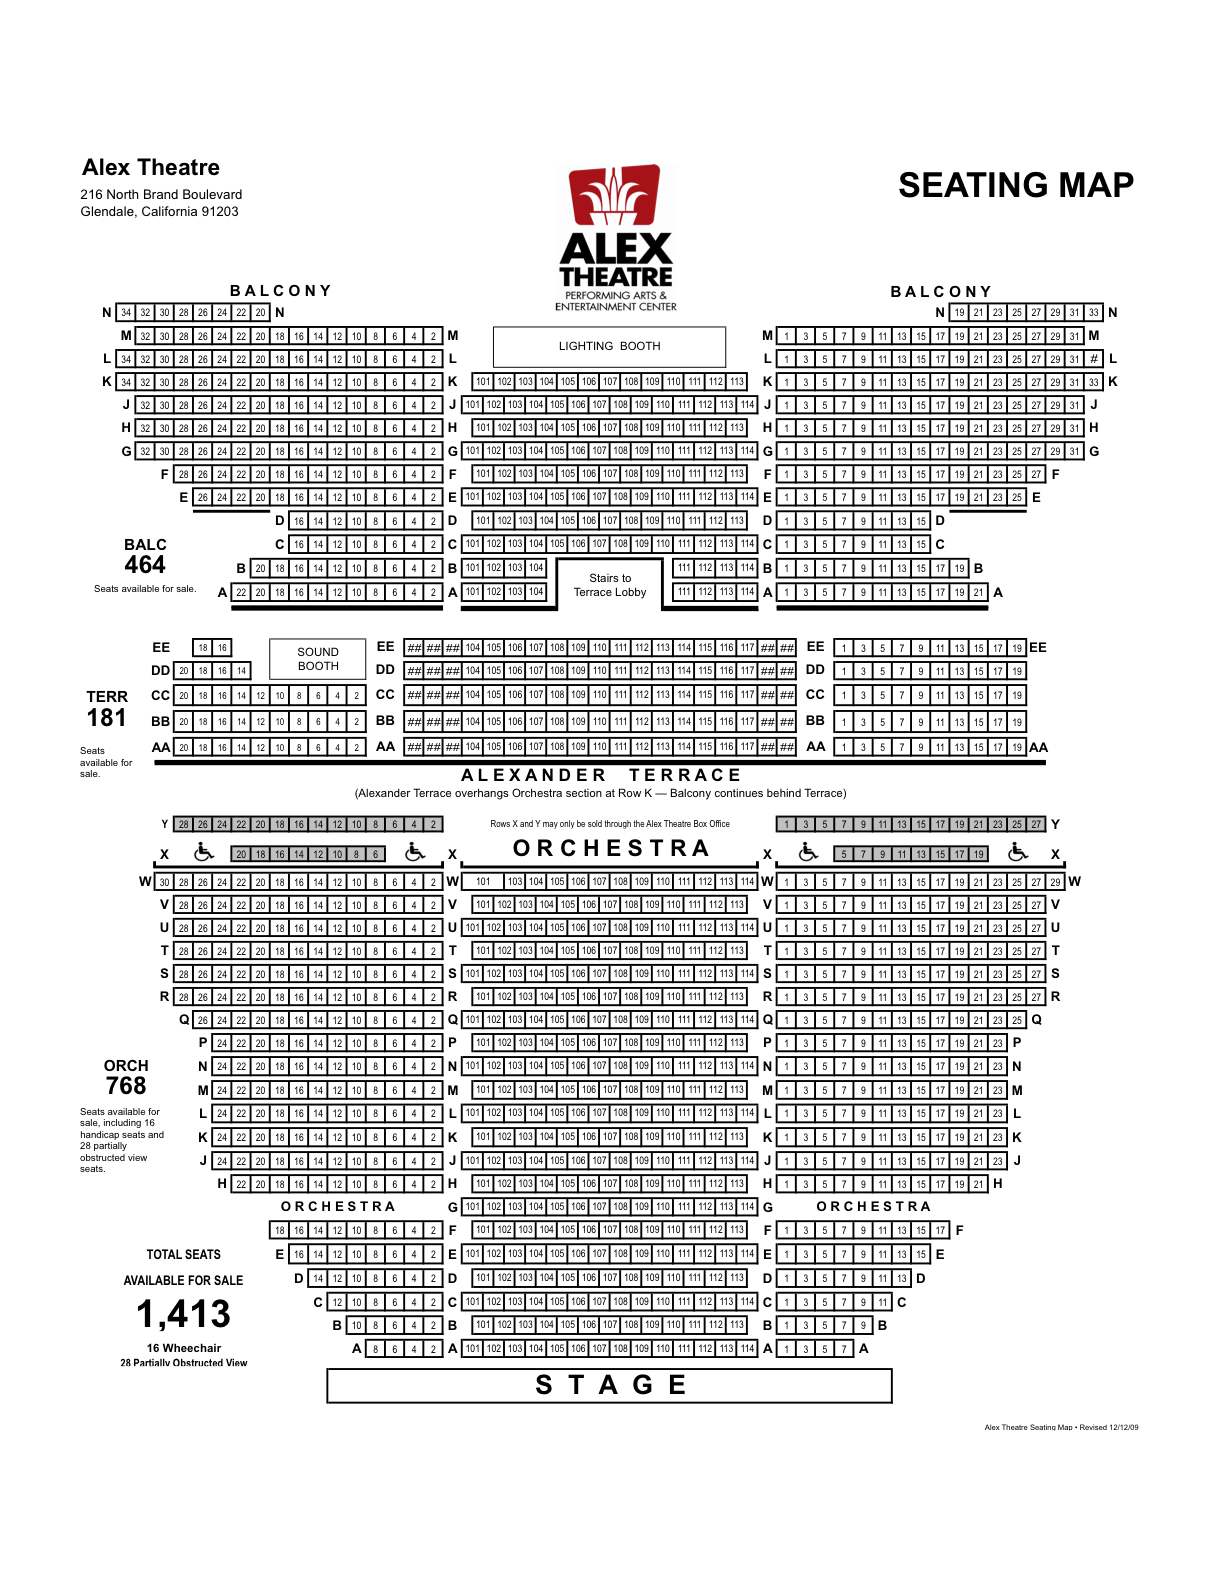 Alex Theater Seating Map